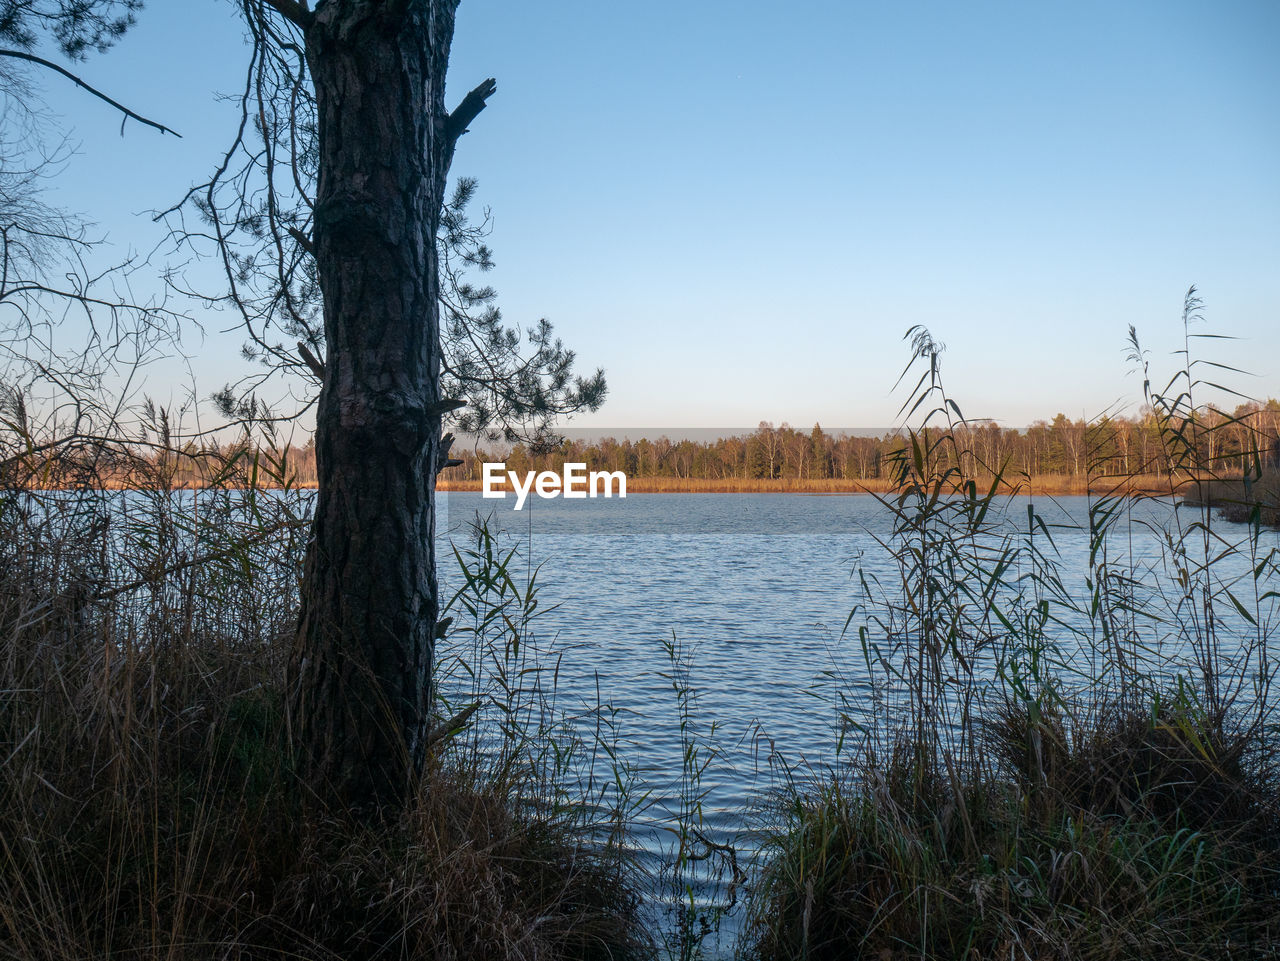 plant, water, sky, tree, tranquility, scenics - nature, tranquil scene, beauty in nature, lake, nature, growth, no people, day, clear sky, non-urban scene, grass, trunk, tree trunk, land, outdoors